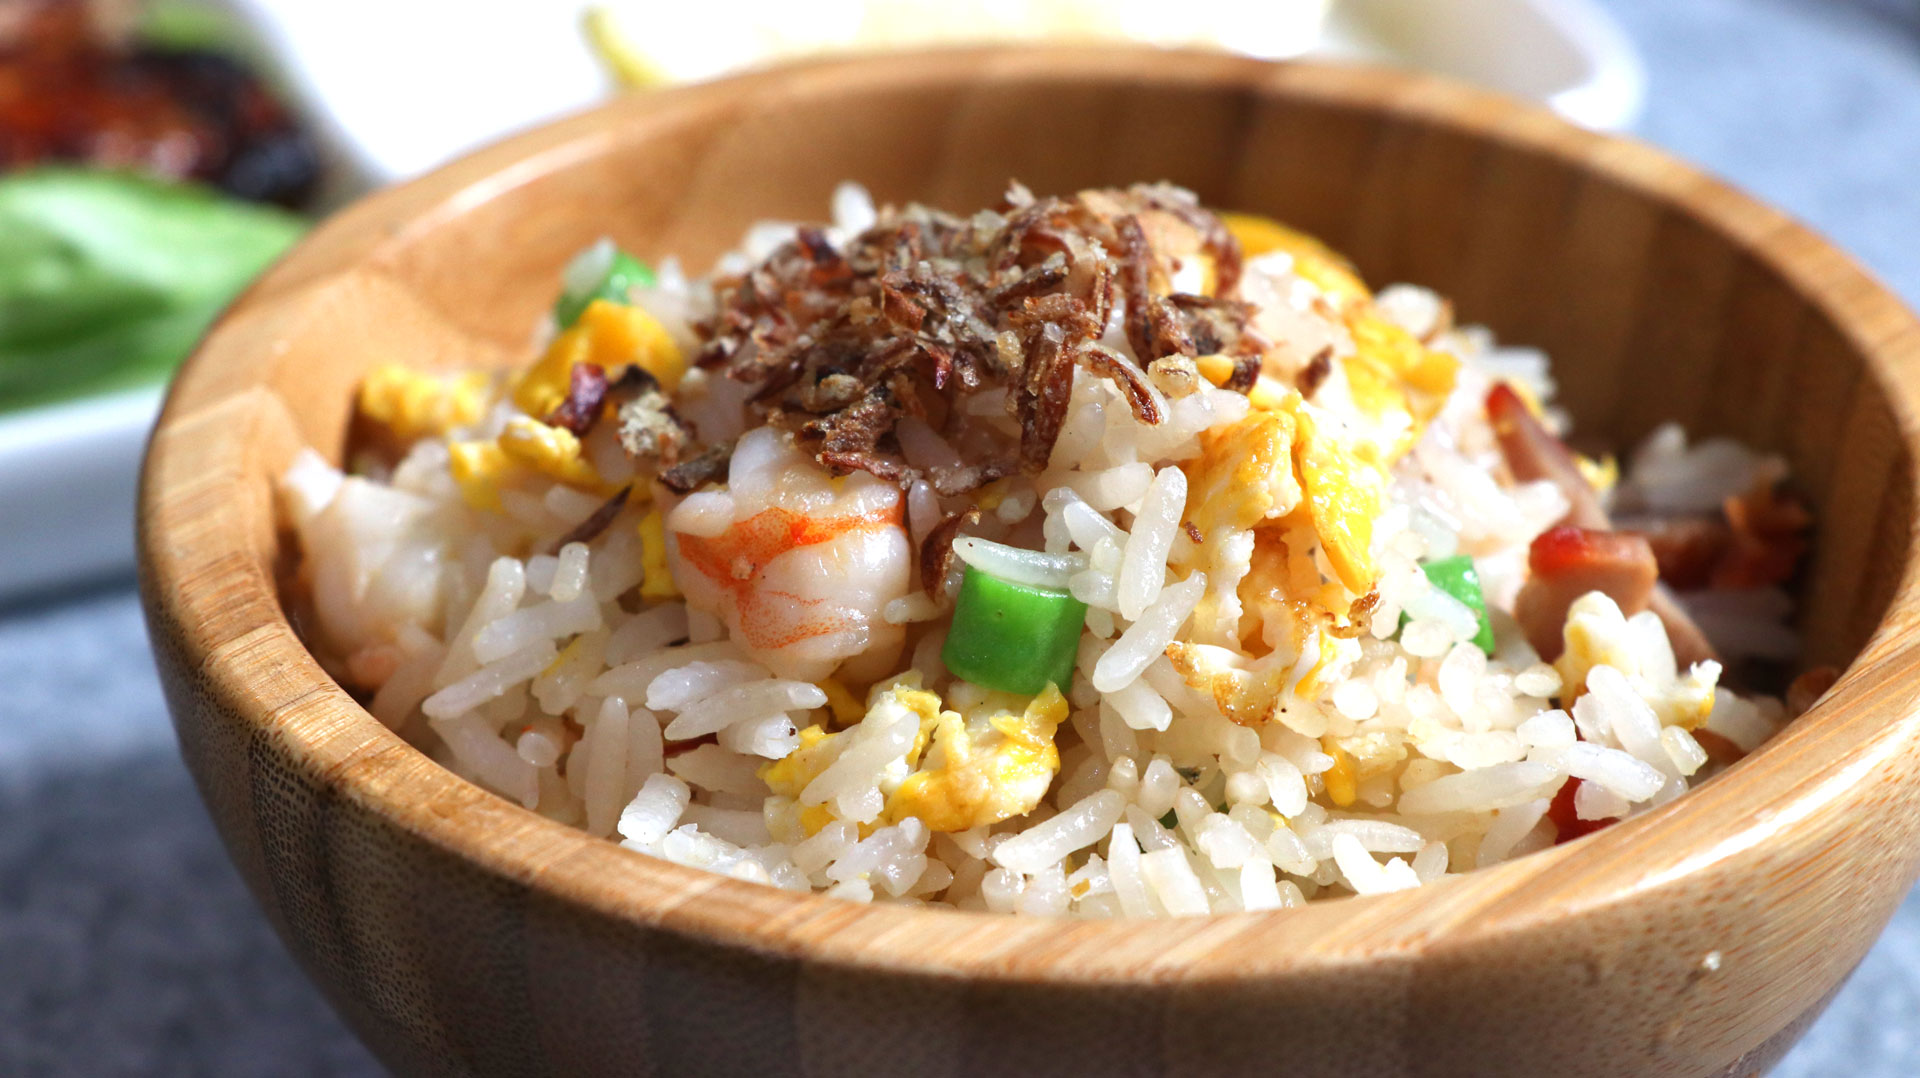 two-bad-chefs-fried-rice-dish-02.jpg